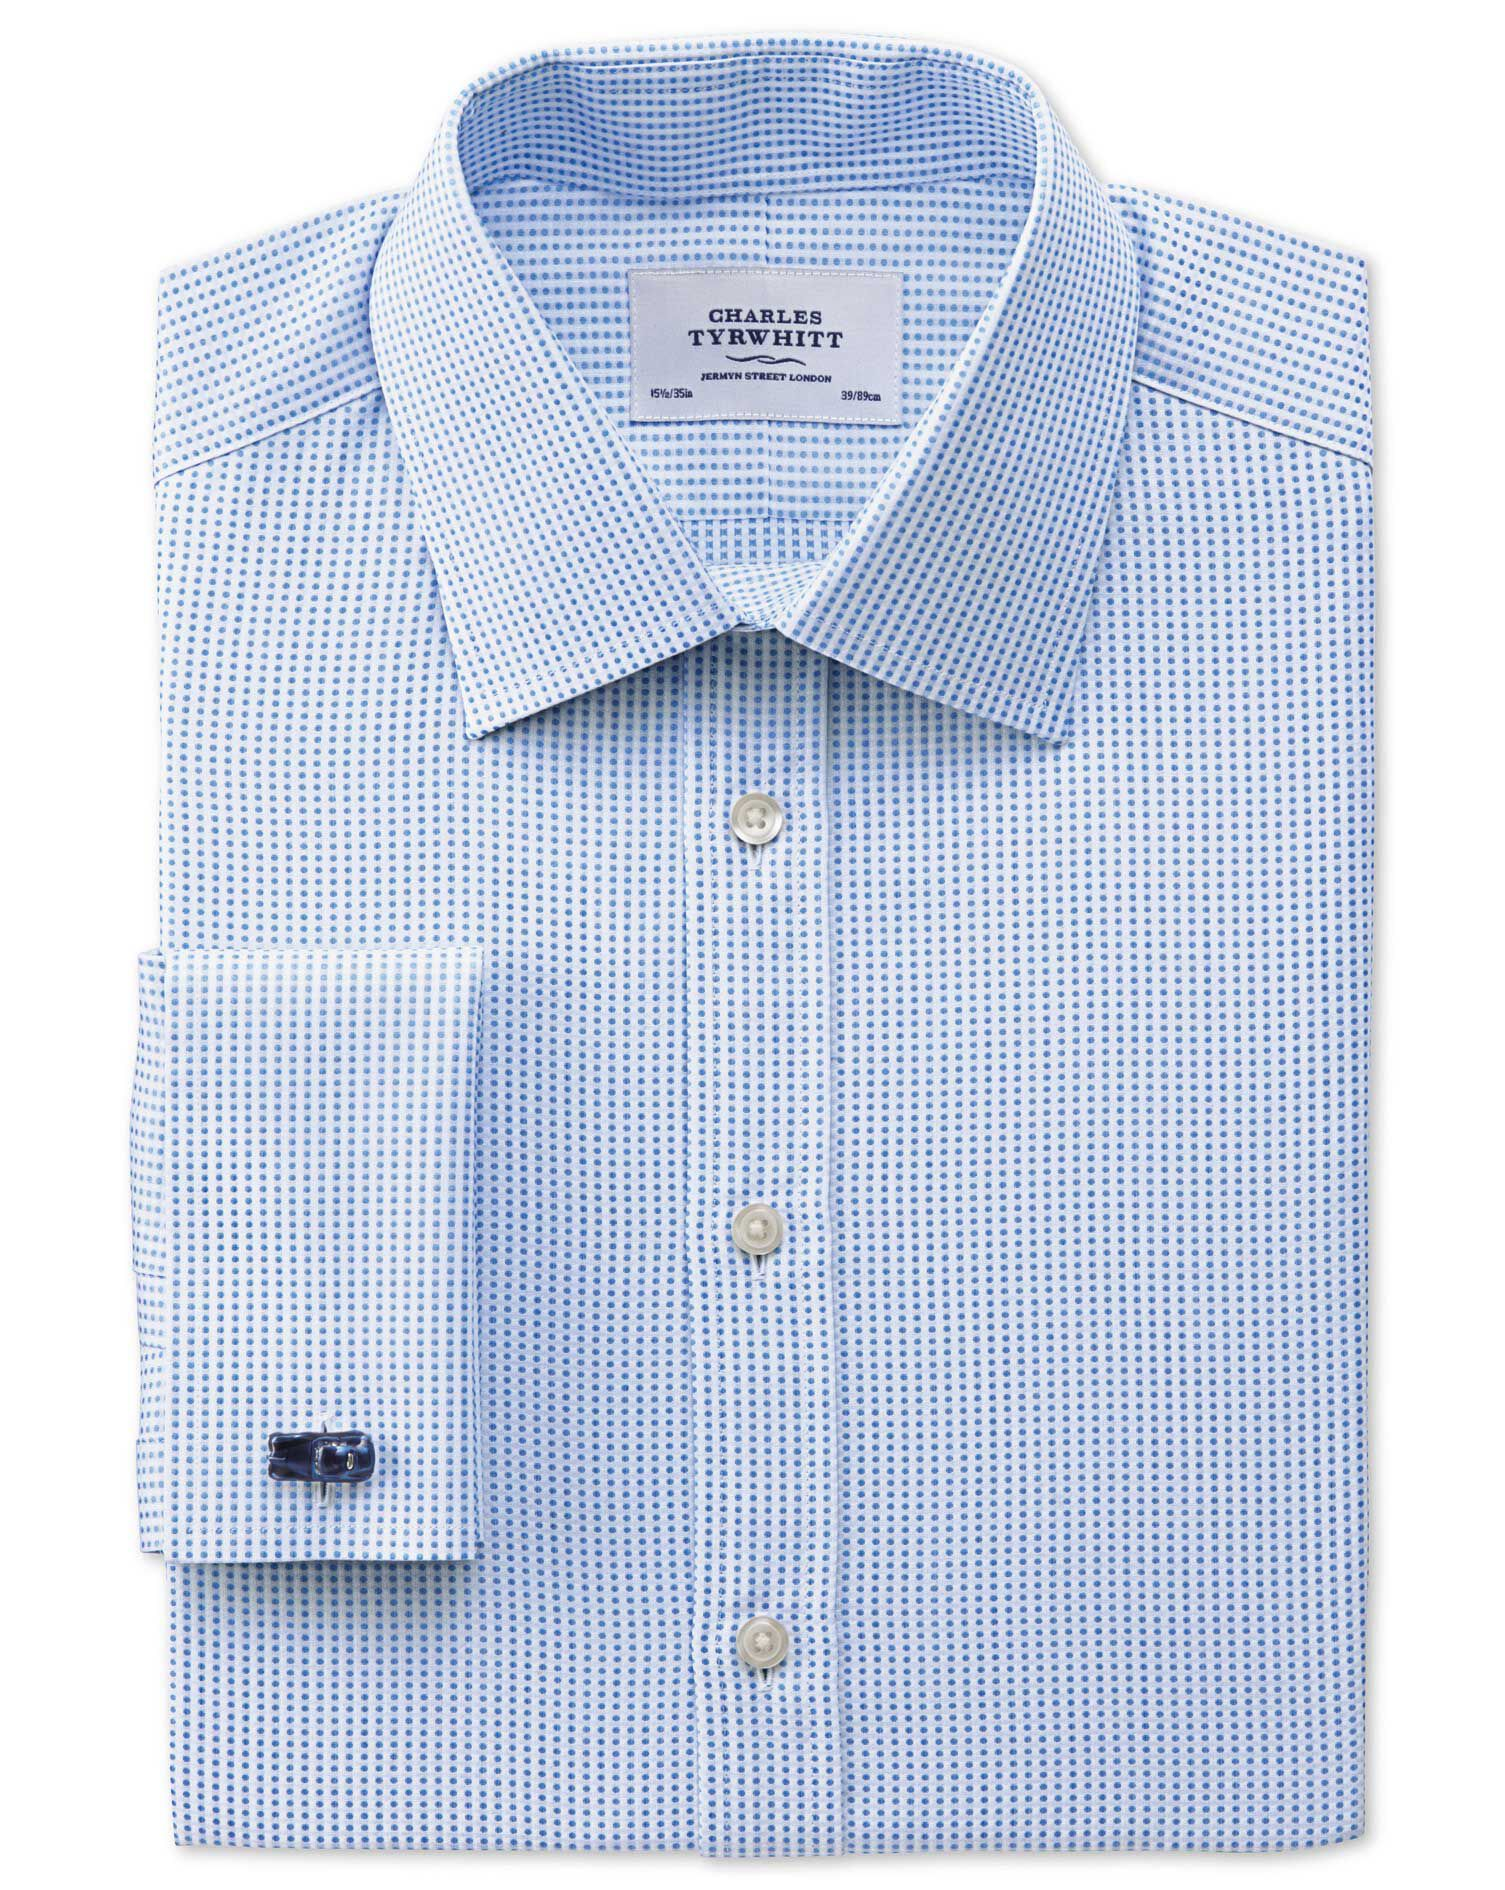 Slim Fit Pima Cotton Double-Faced Sky Blue Formal Shirt Single Cuff Size 15/35 by Charles Tyrwhitt